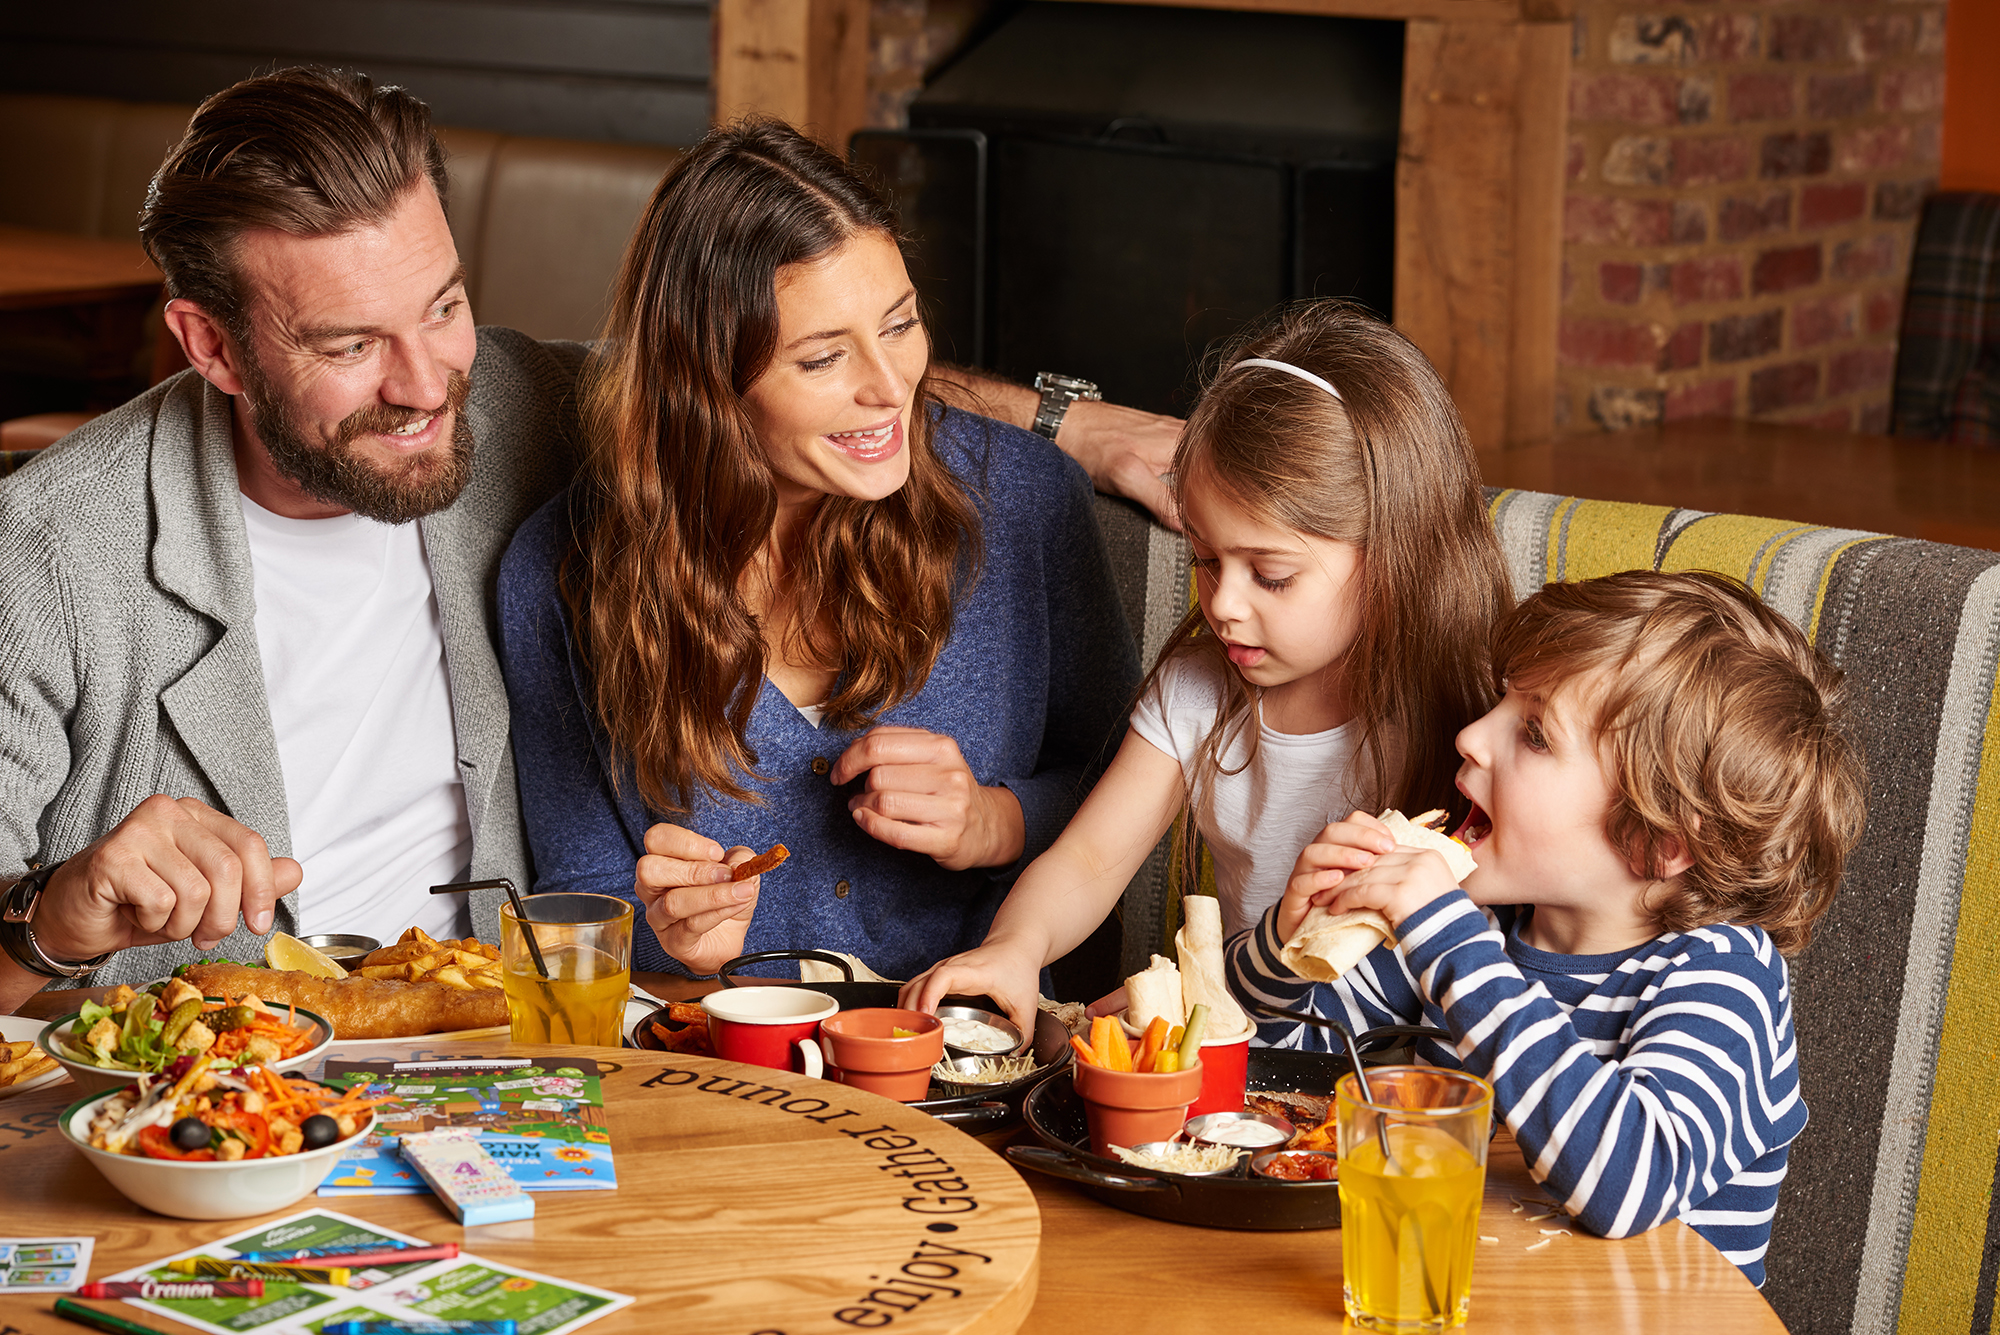 Family lifestyle photography for Harvester Restaurants